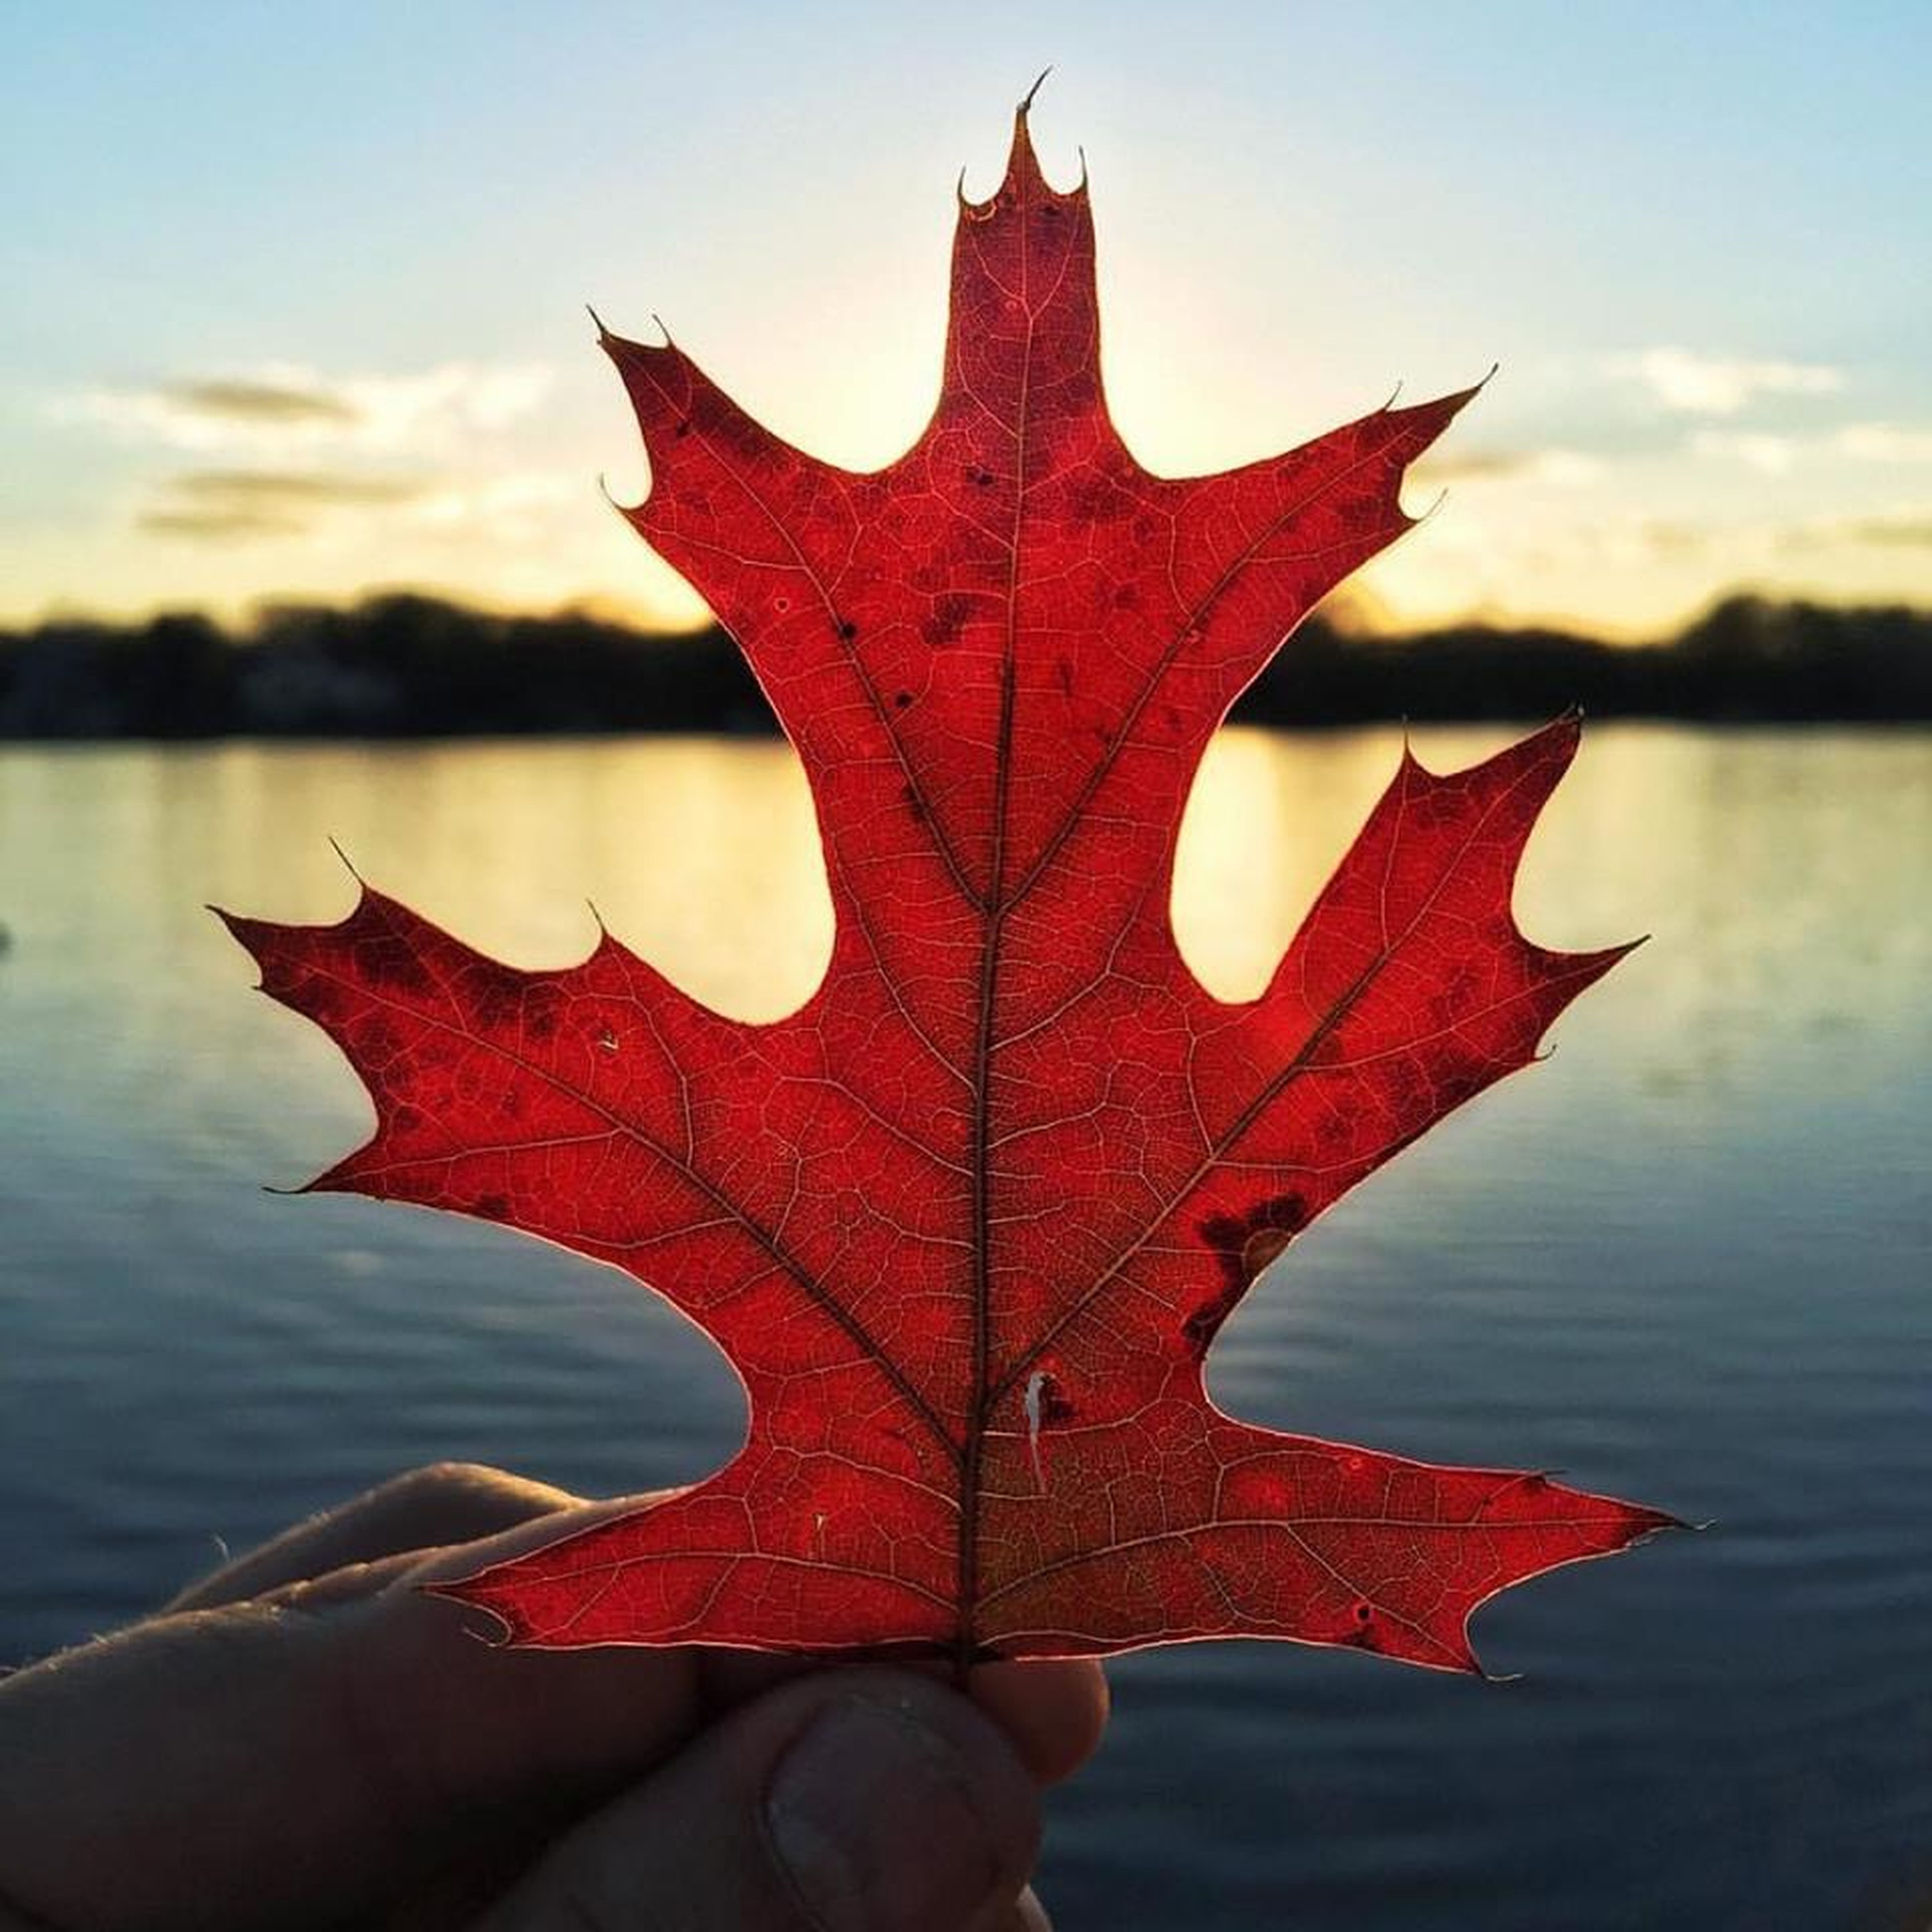 person, focus on foreground, part of, close-up, water, red, sky, unrecognizable person, star shape, holding, cropped, human finger, leisure activity, personal perspective, outdoors, orange color, nature